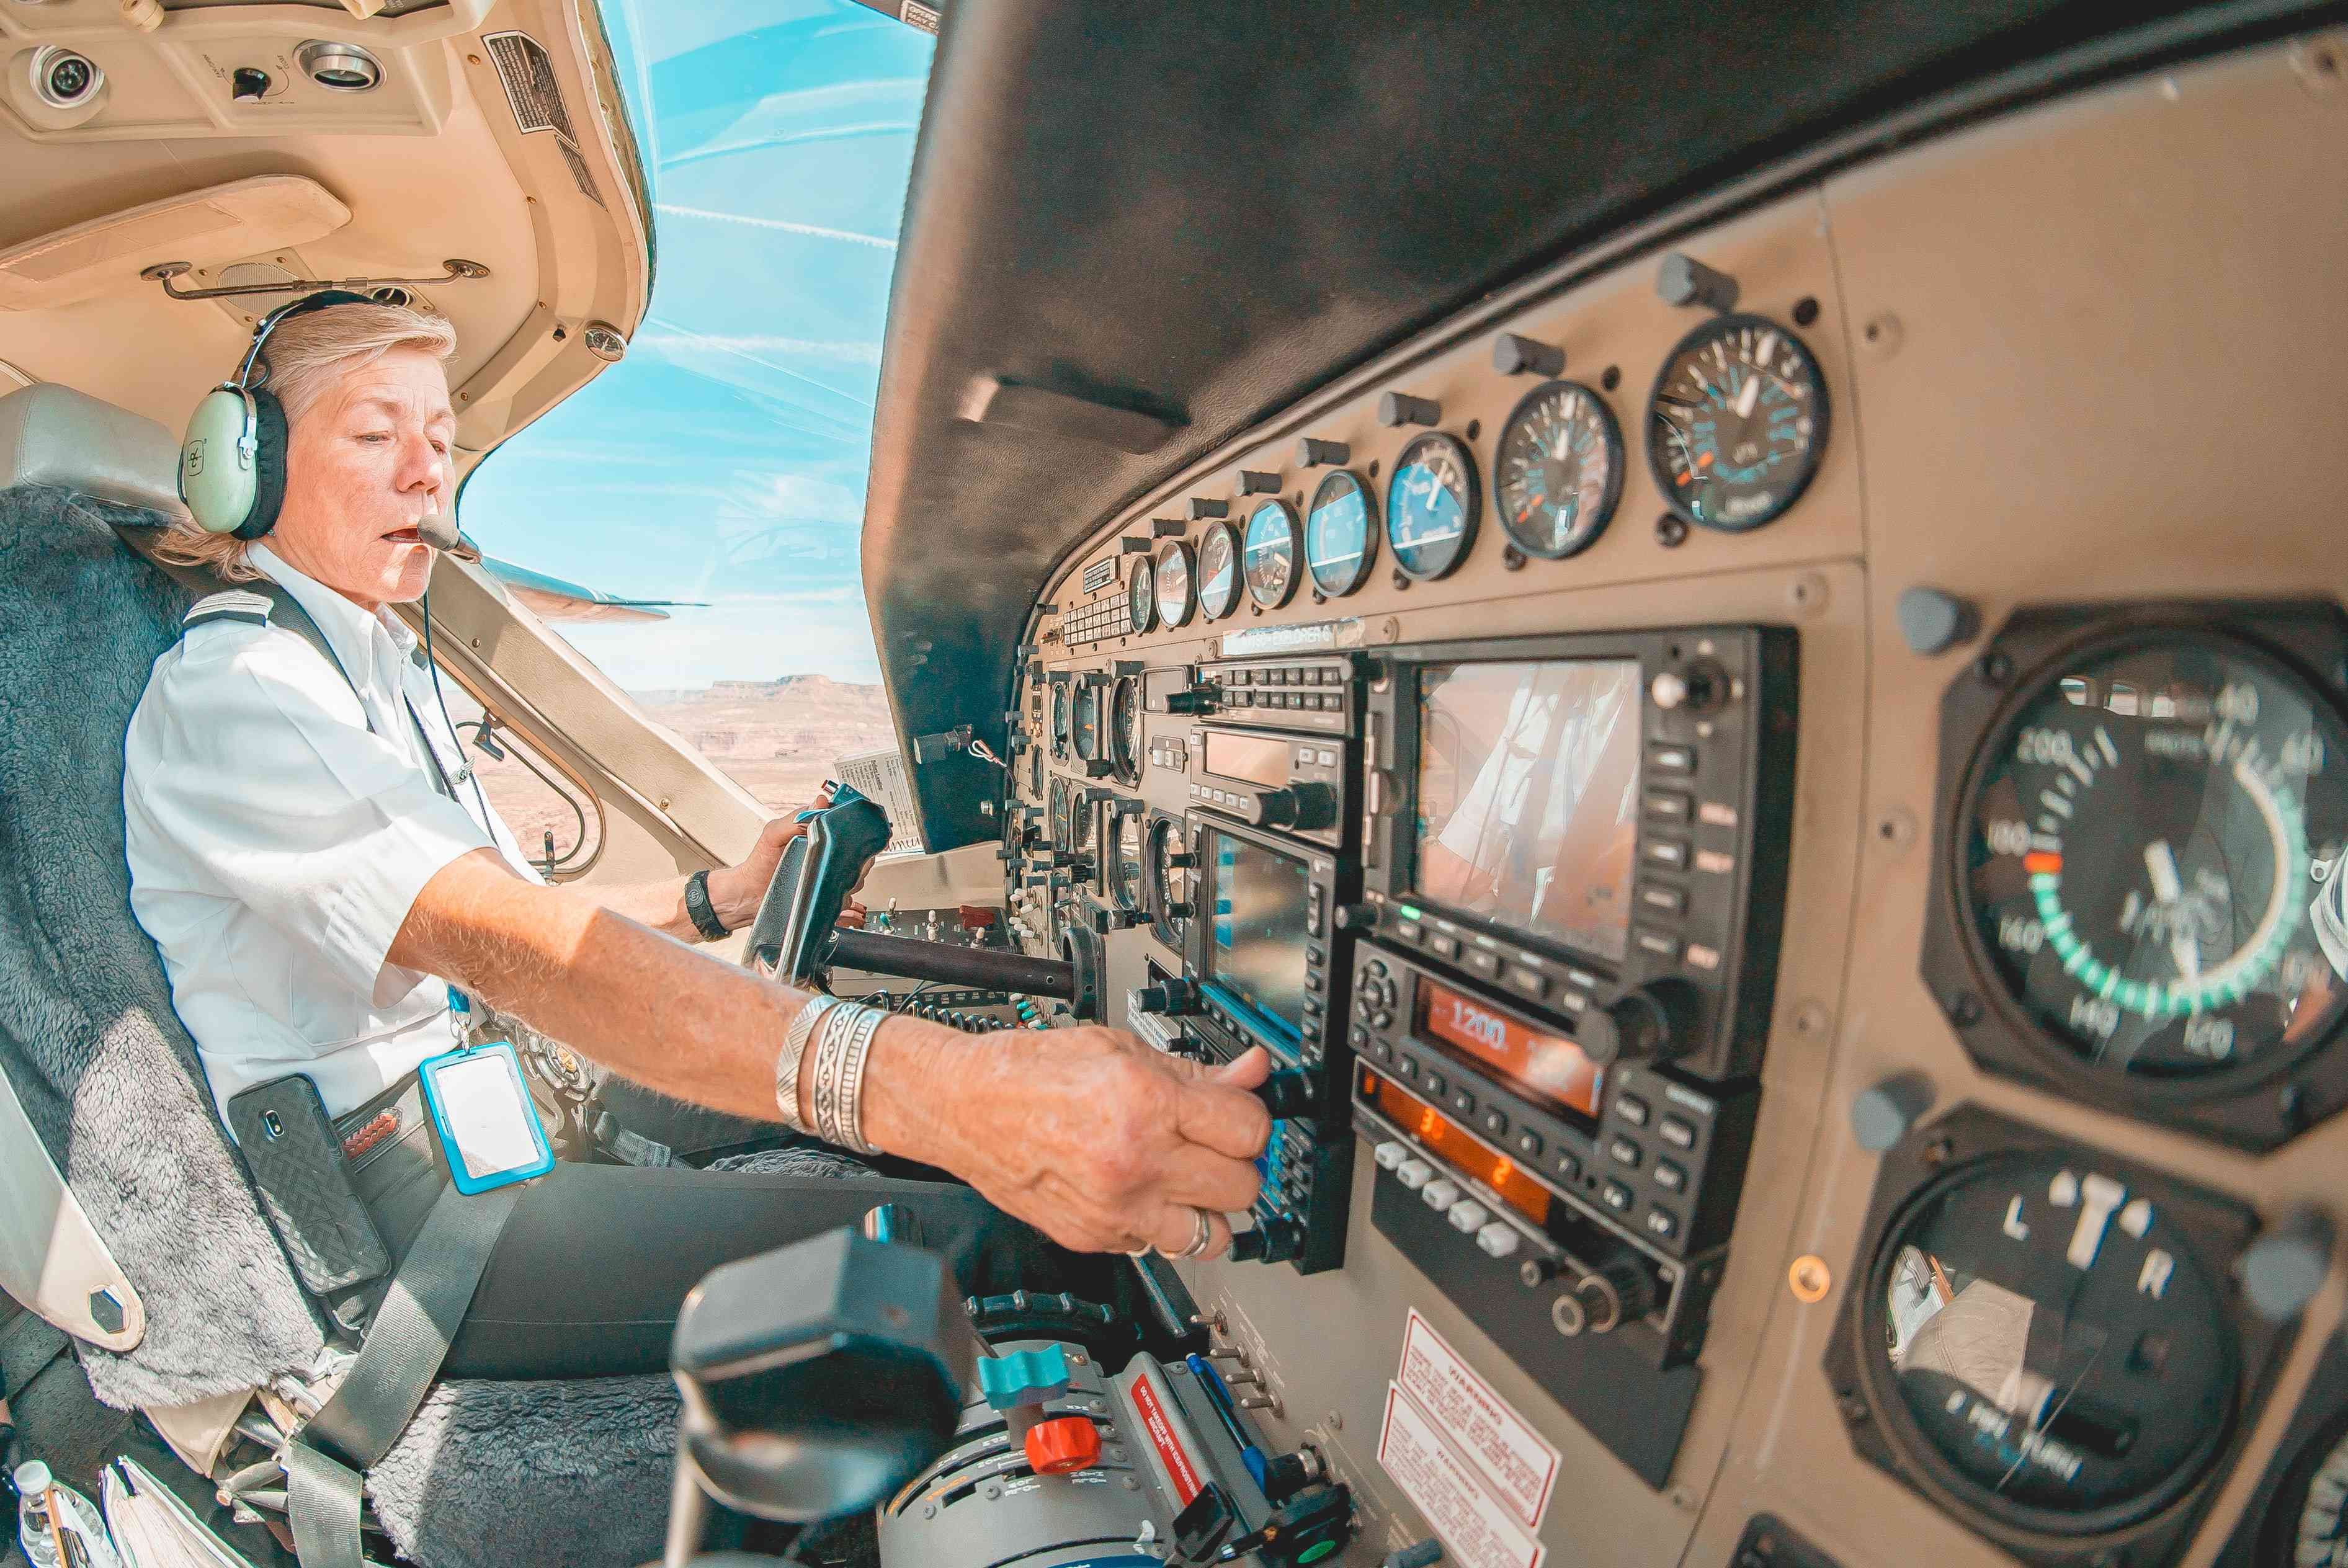 A pilot in a cockpit flying a plane over the grand canyon.